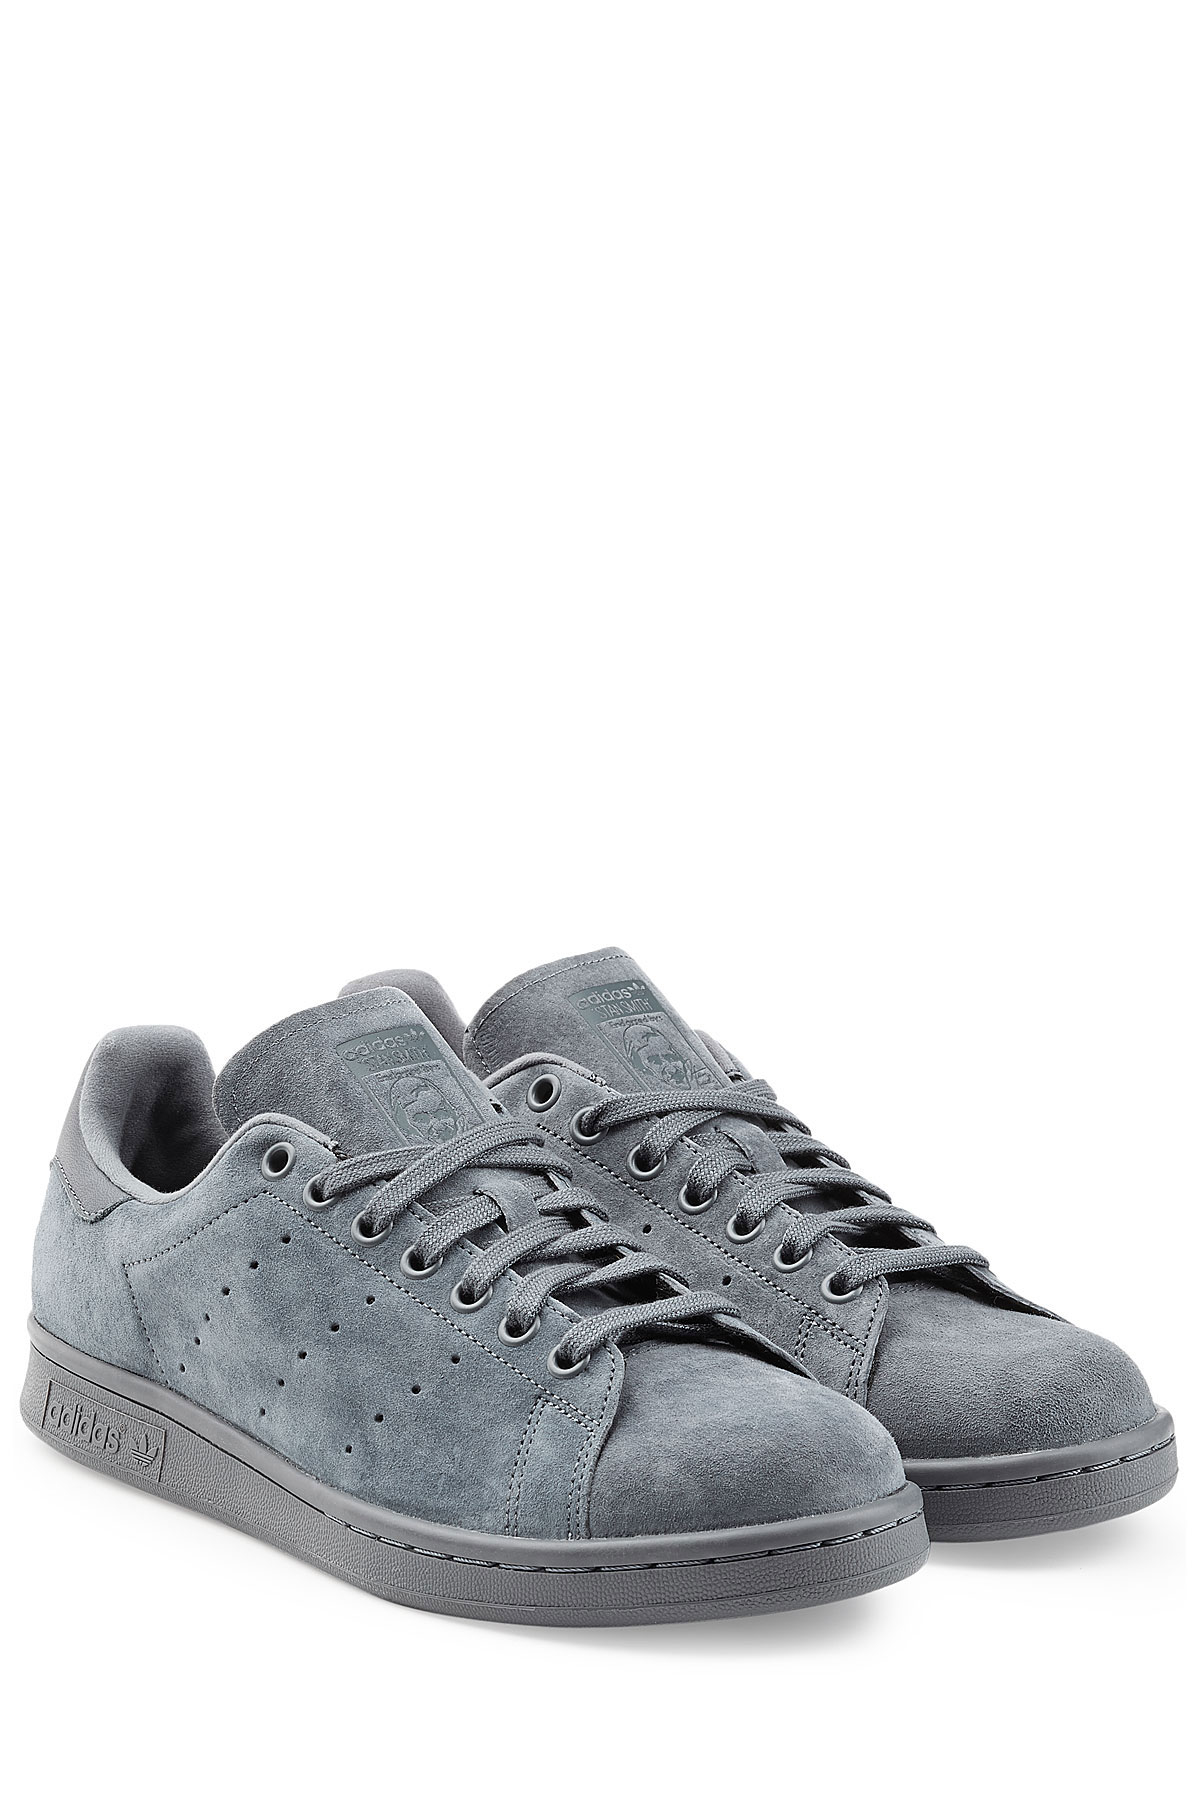 adidas ltd navy suede stan smith sneakers. Black Bedroom Furniture Sets. Home Design Ideas